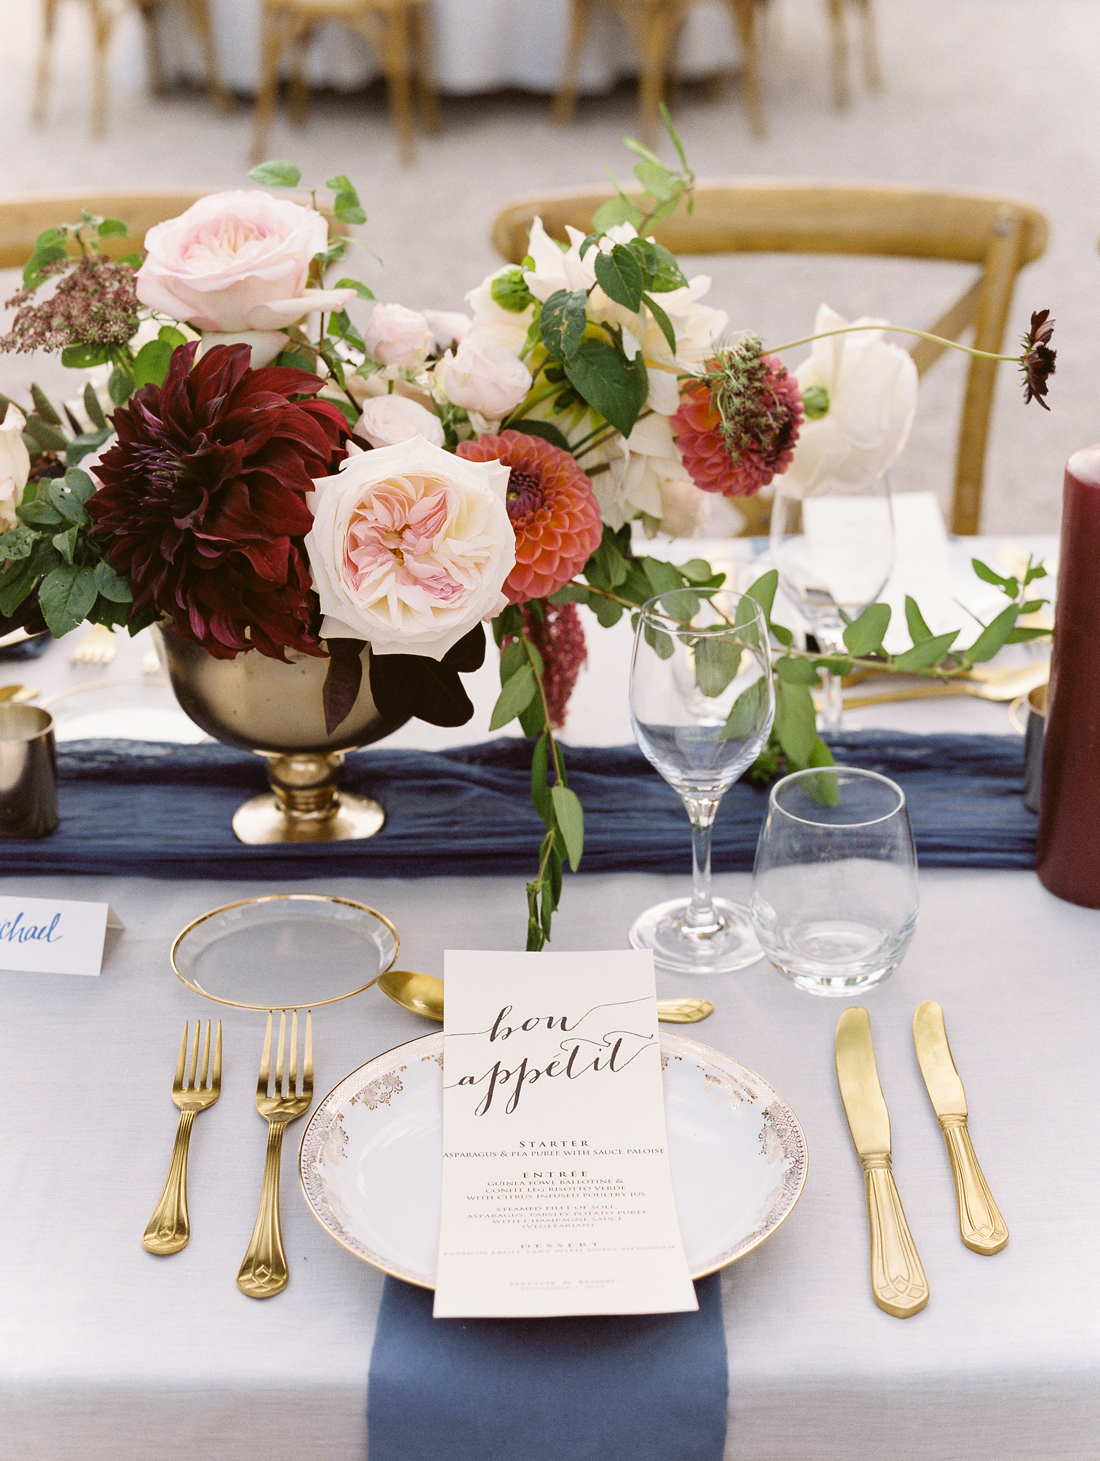 white and gold place settings with navy blue linen accents and floral centerpieces